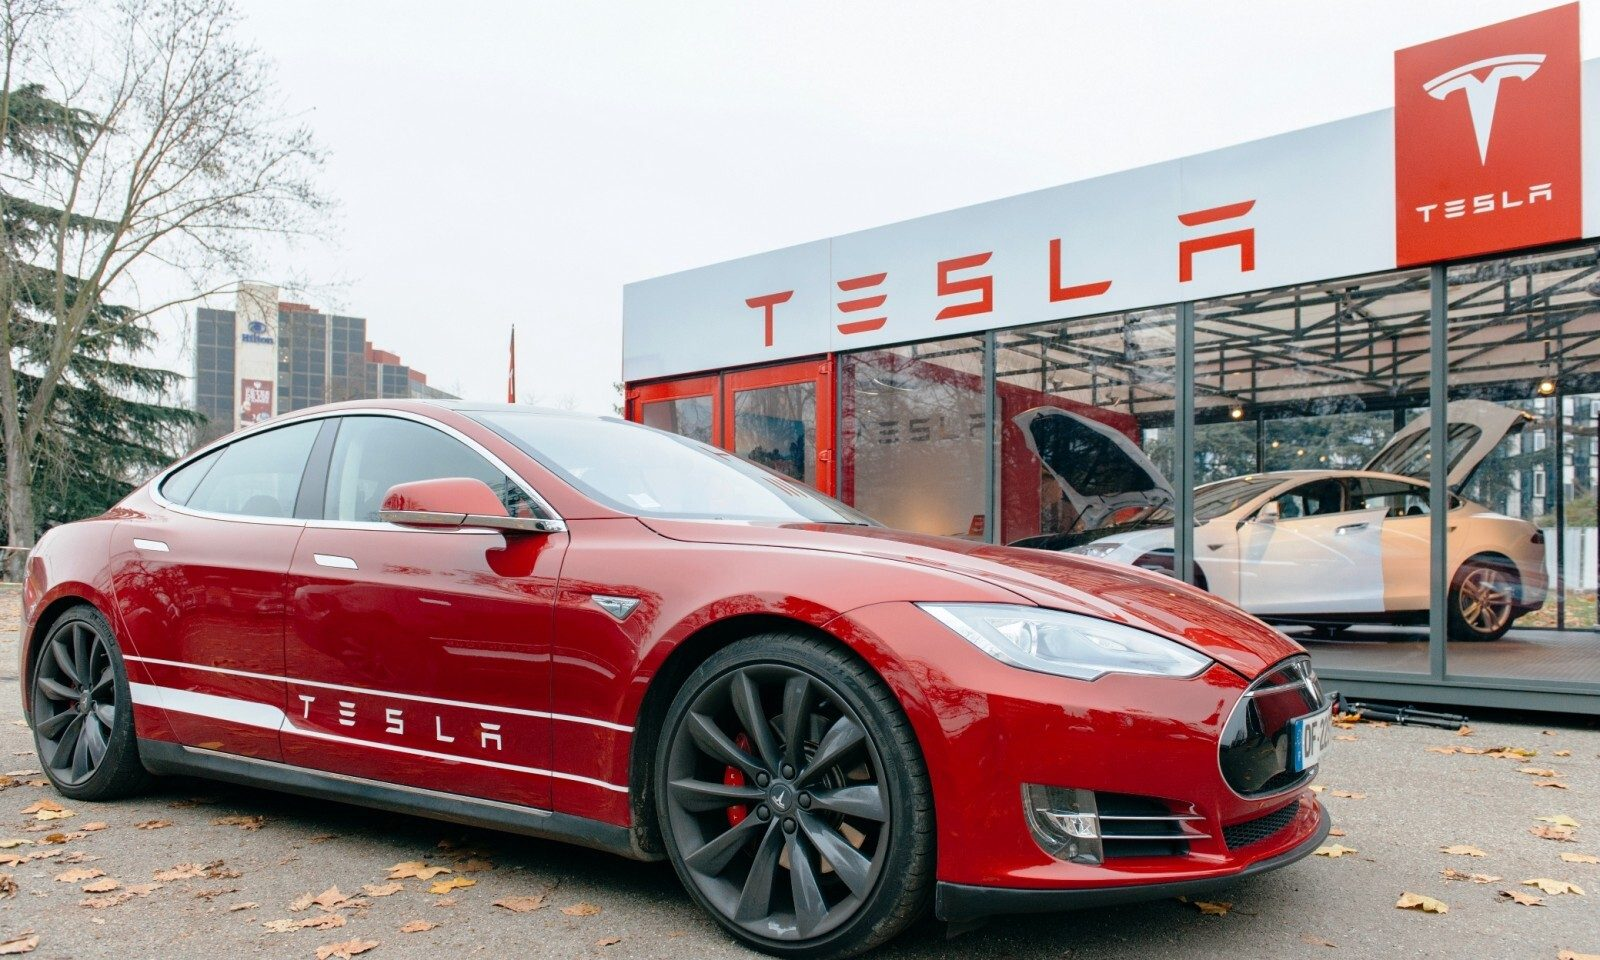 Tesla targets wealthy shoppers | Smart Currency Business